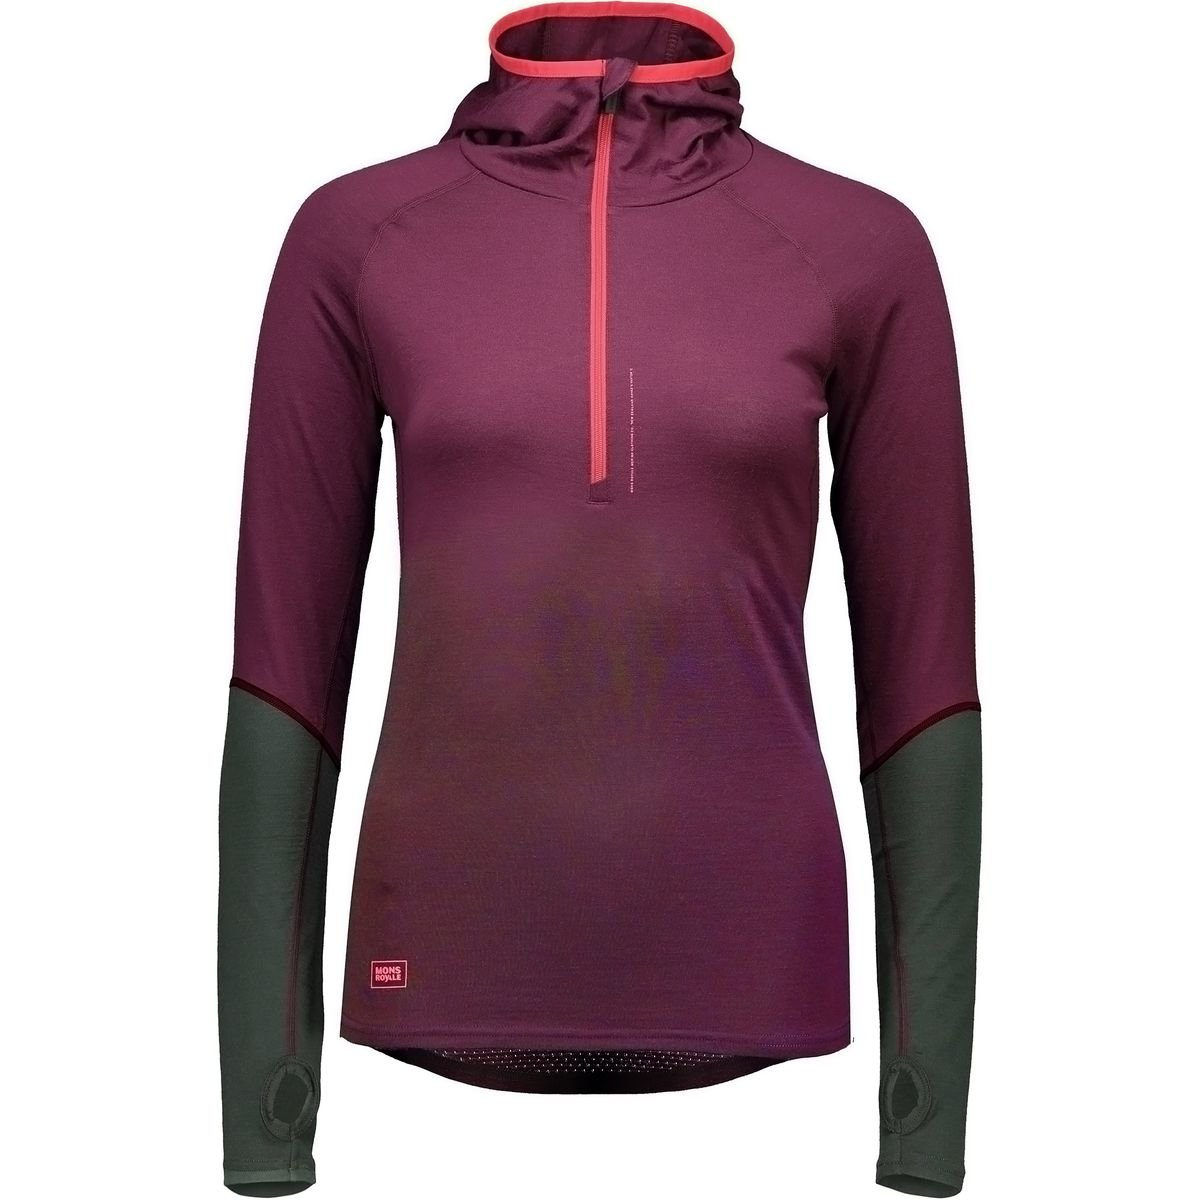 Mons Royale Checklist Long-Sleeve Hoodie - Women's Burgundy/Forest Green, M